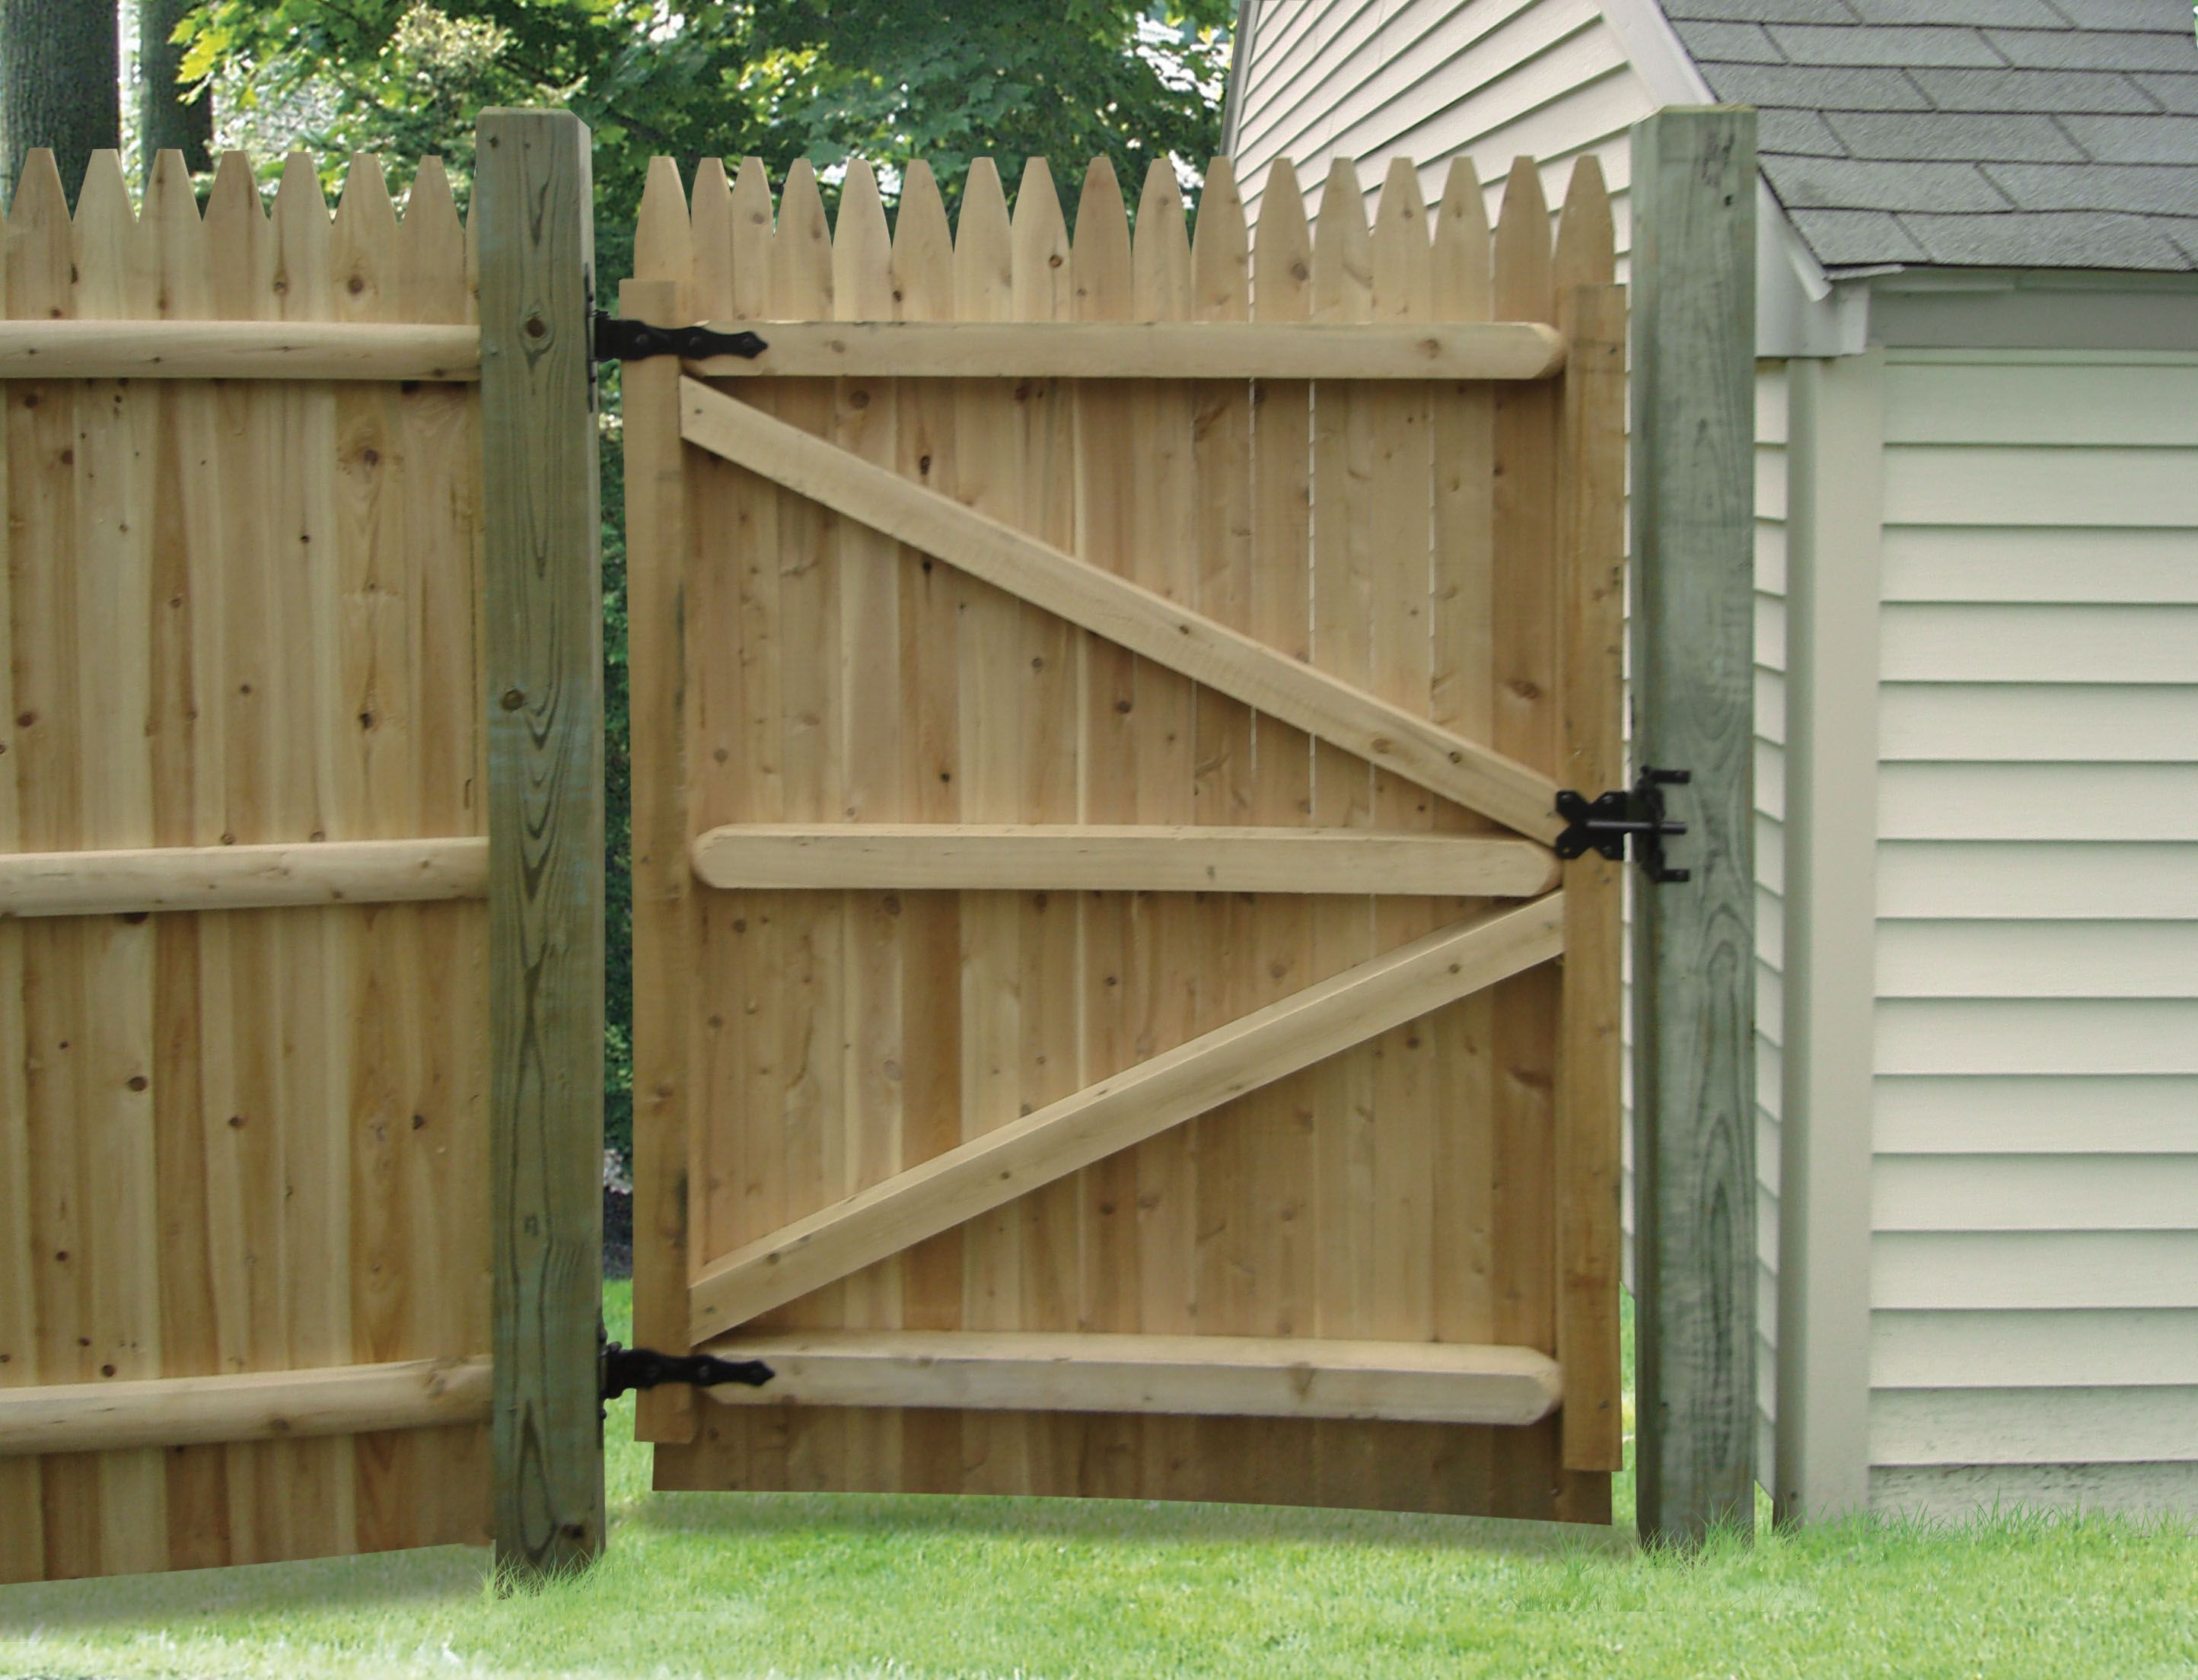 fence gate design wood fence gates wood privacy fence diy fence wooden